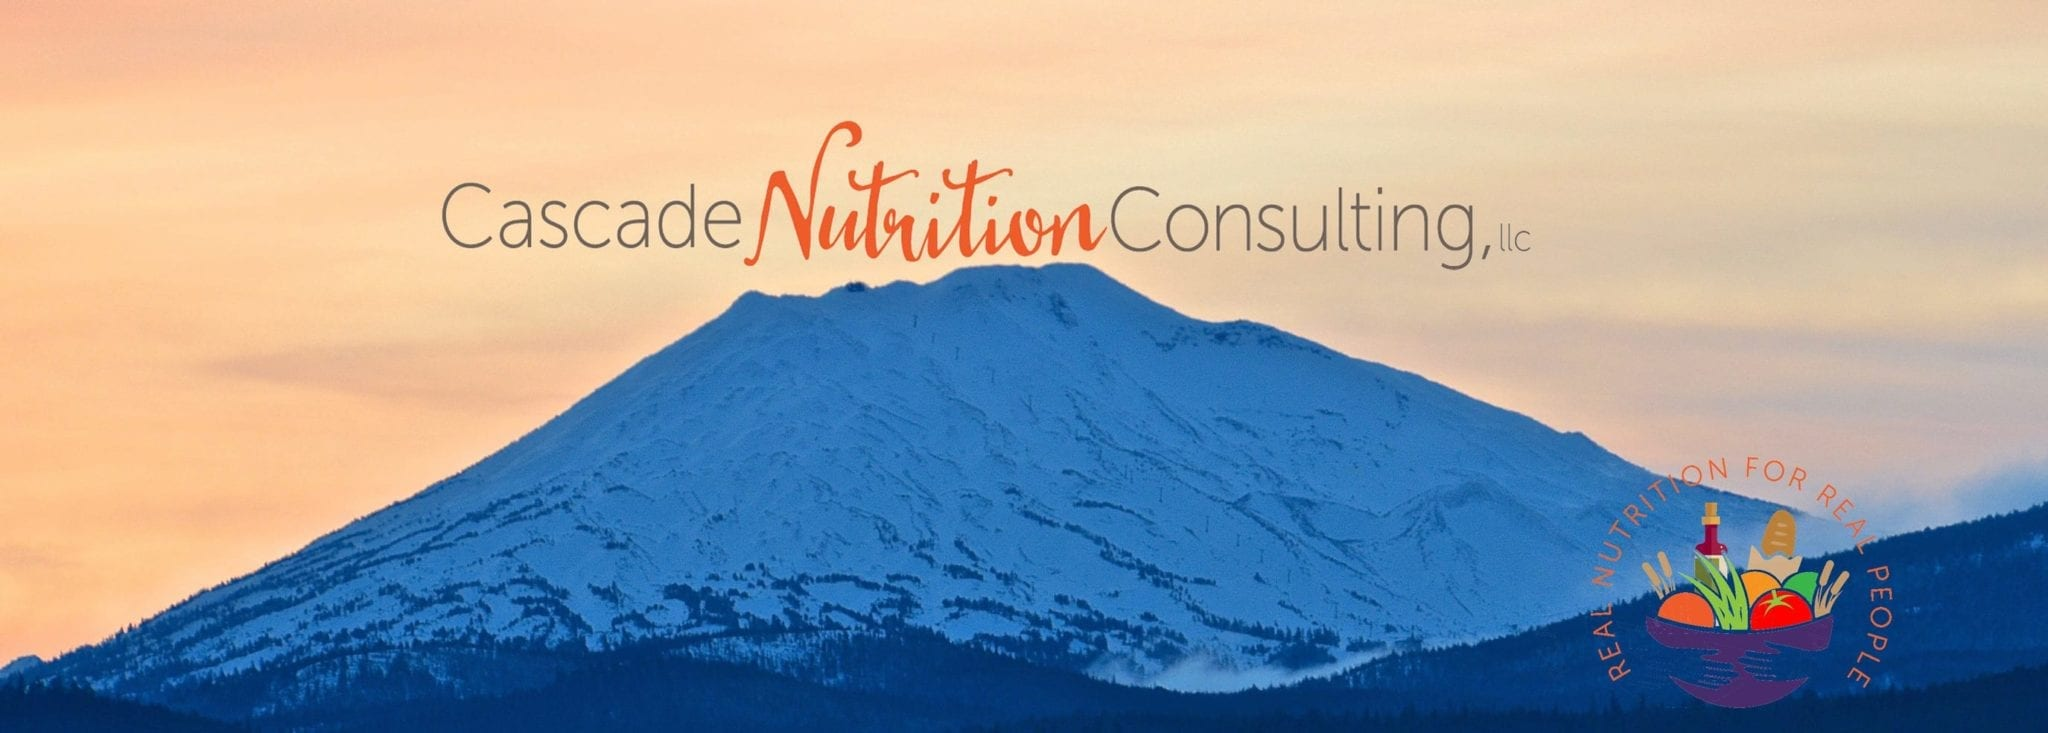 Cascade Nutrition Consulting